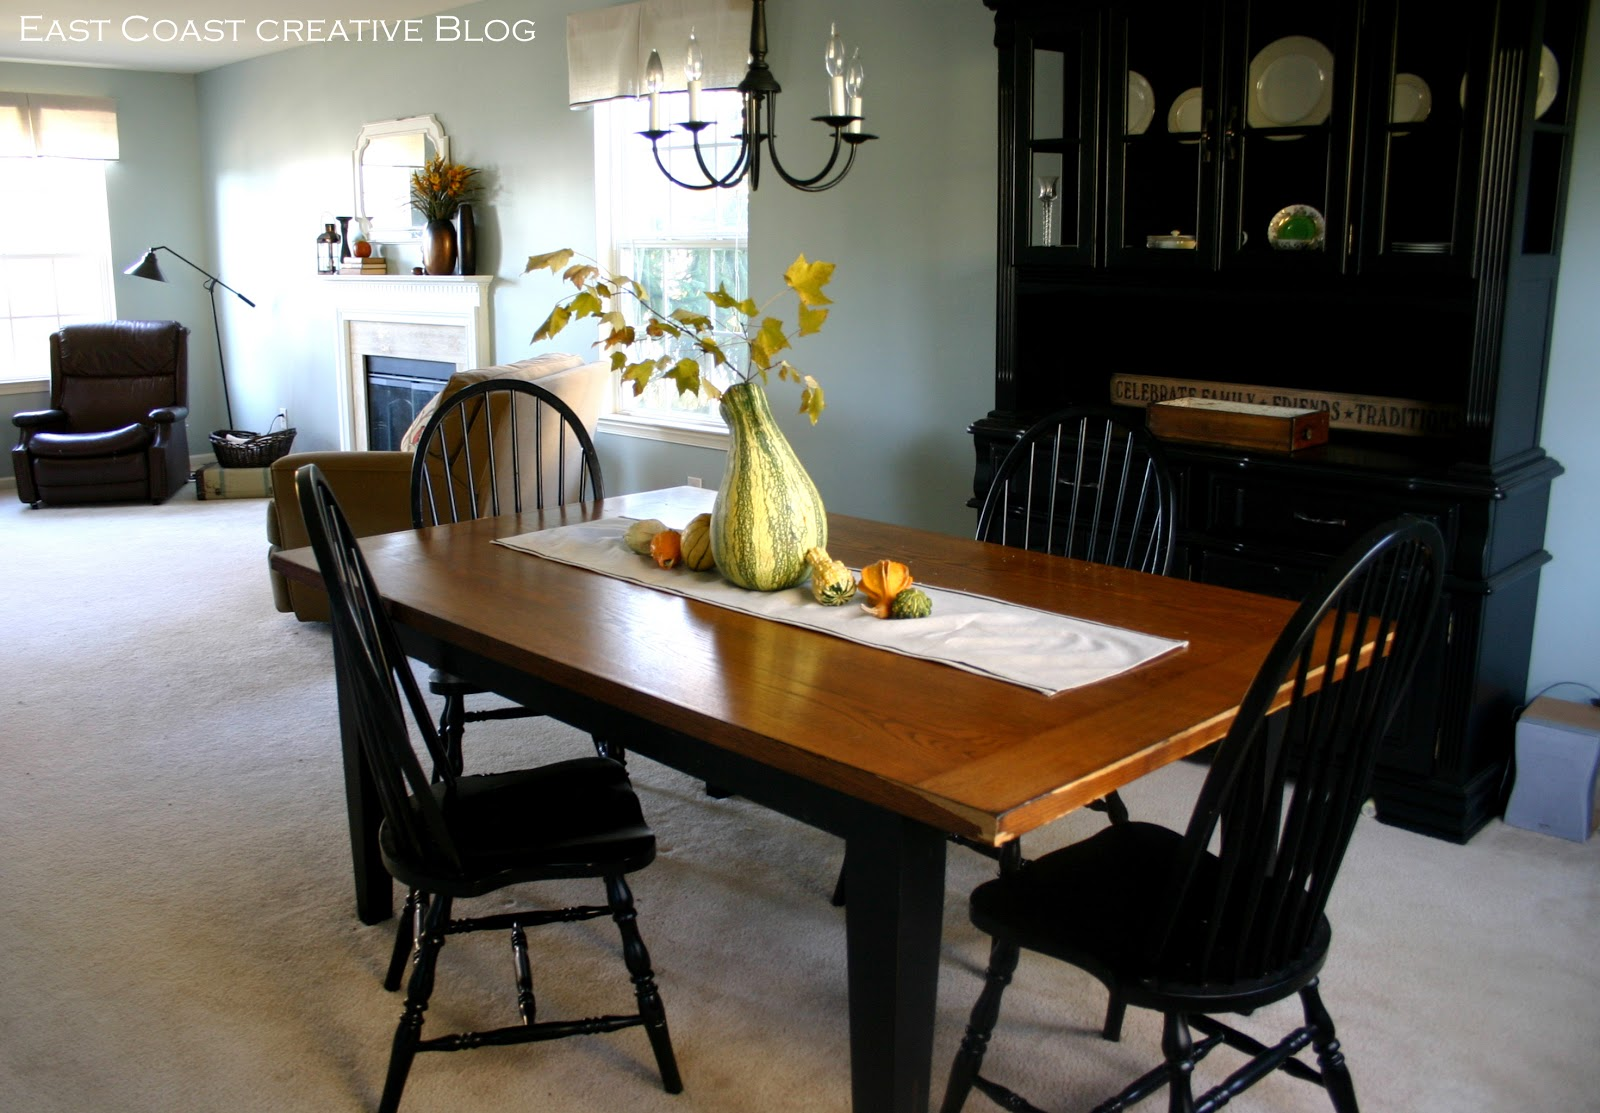 refinished dining room table furniture refinish kitchen table Refinished Dining Room Table Furniture Makeover